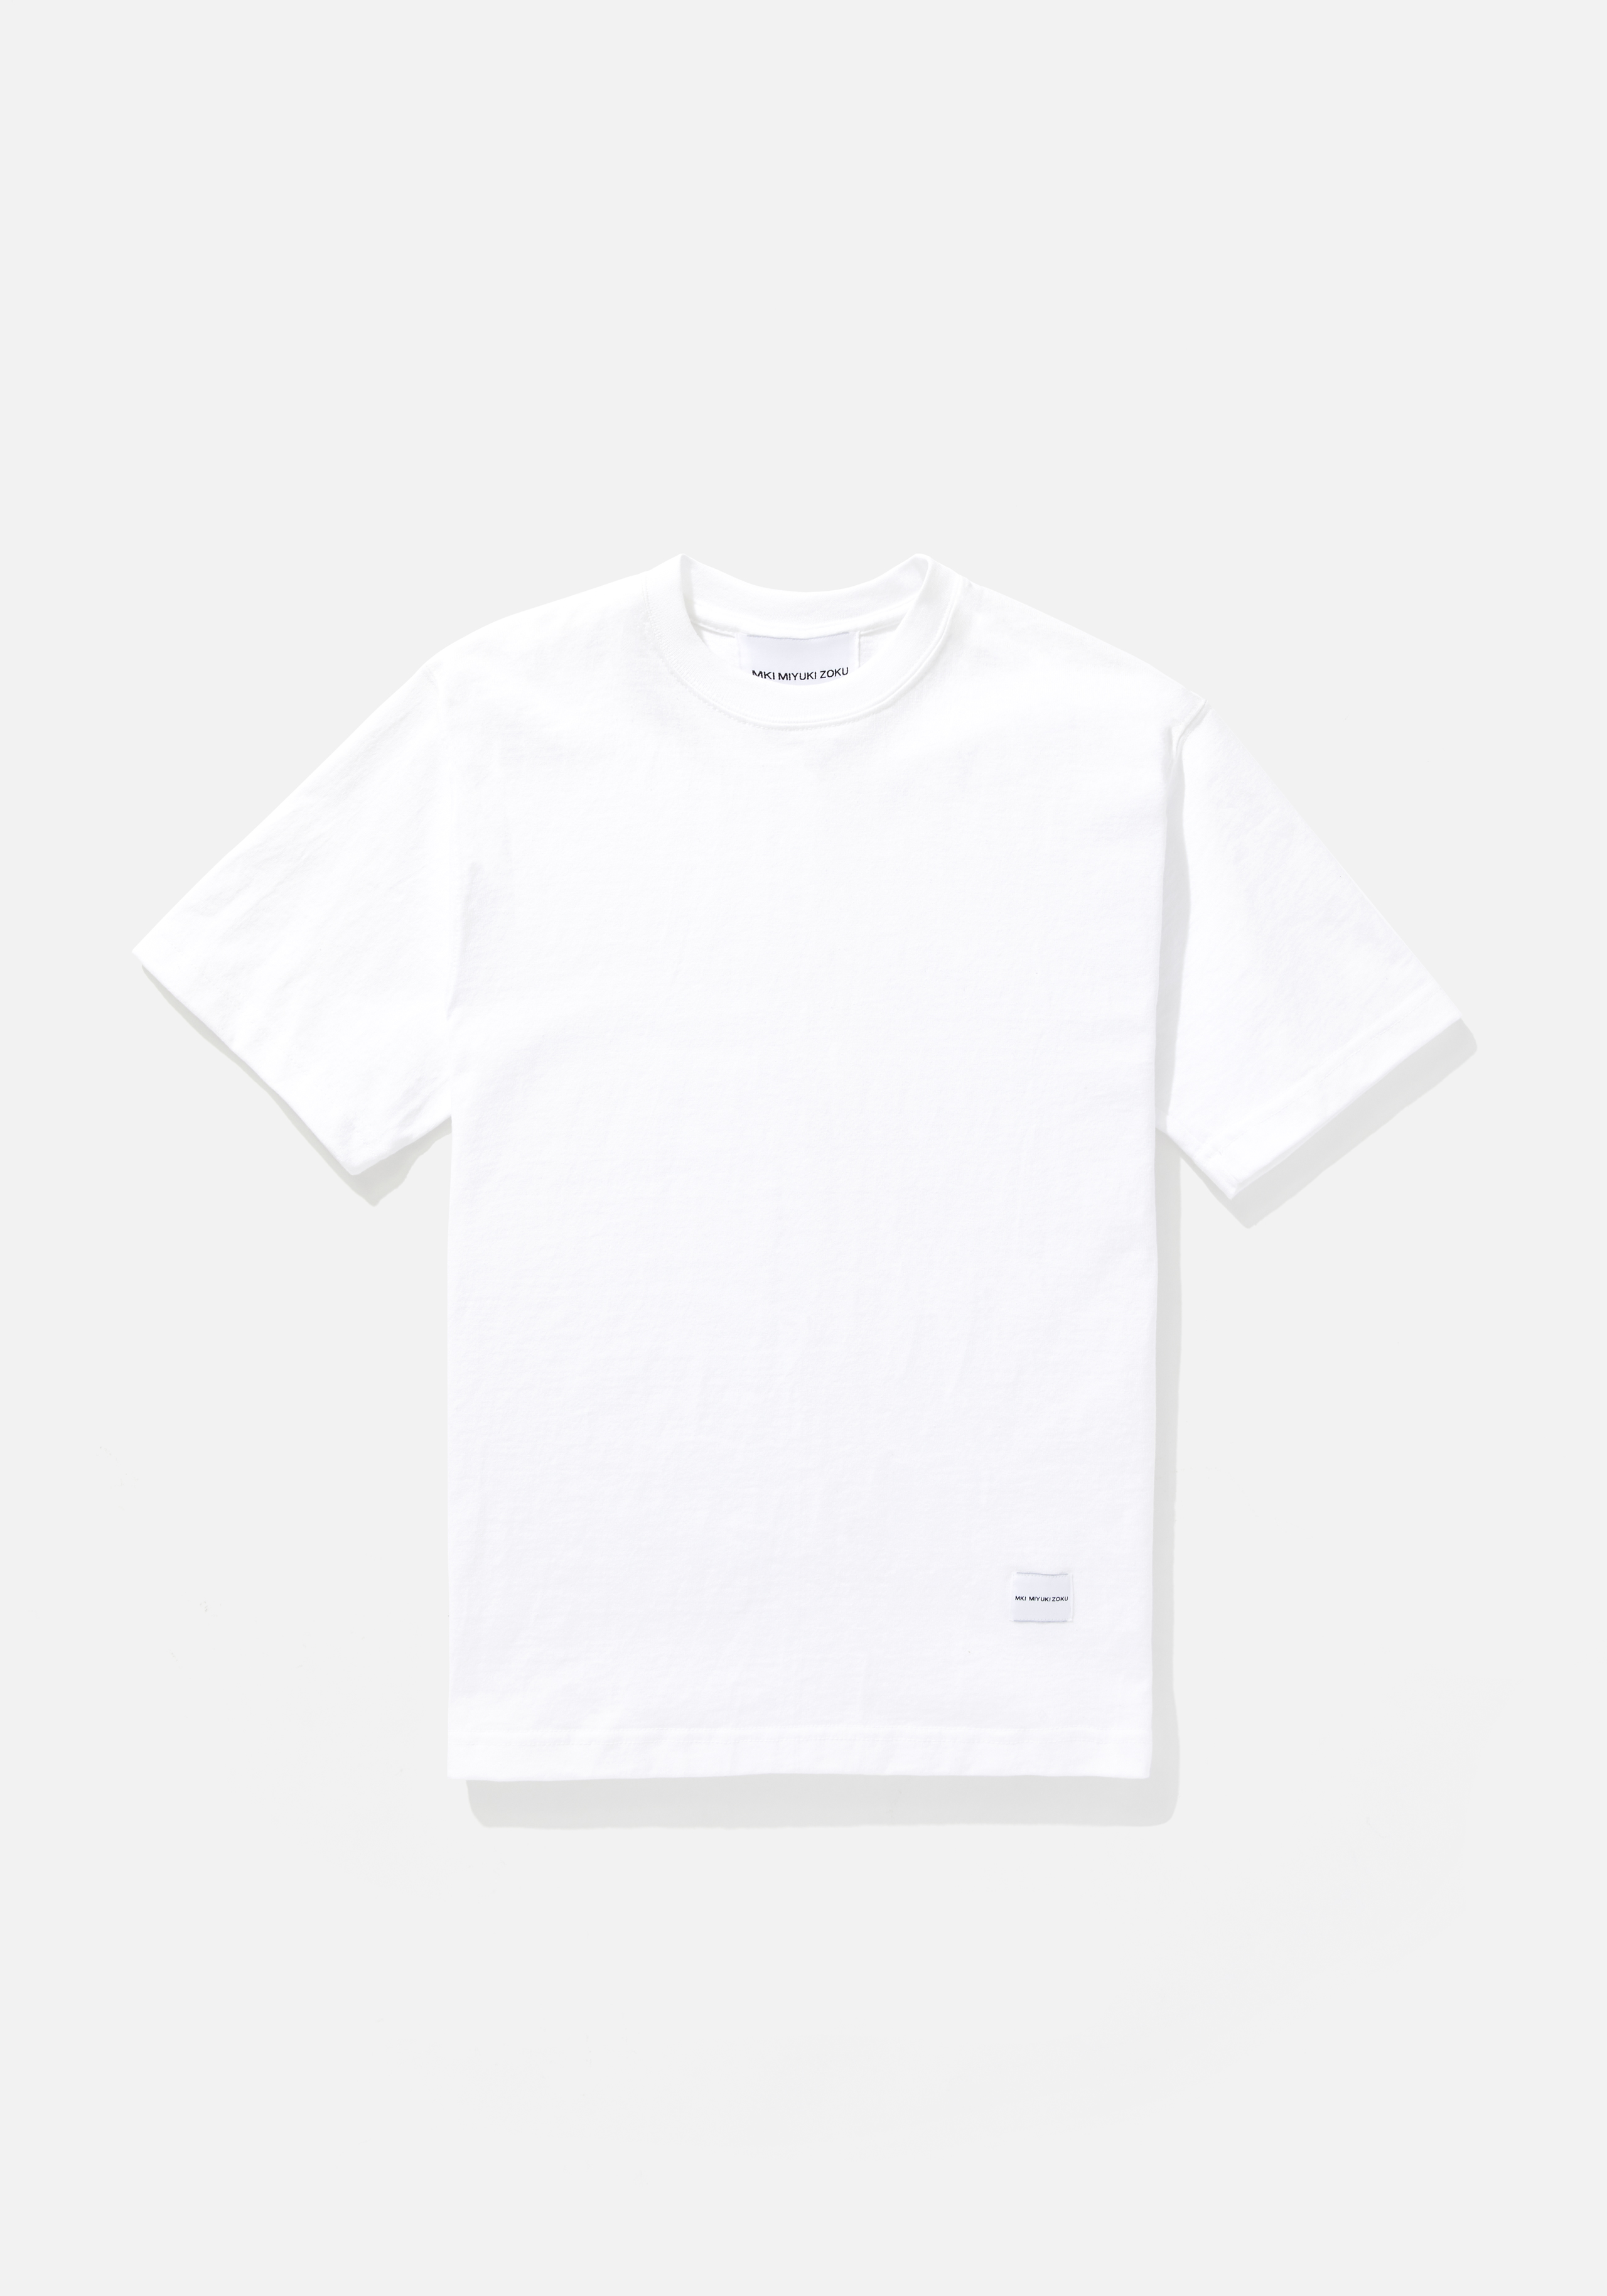 mki 8oz super heavyweight tee made in usa 1